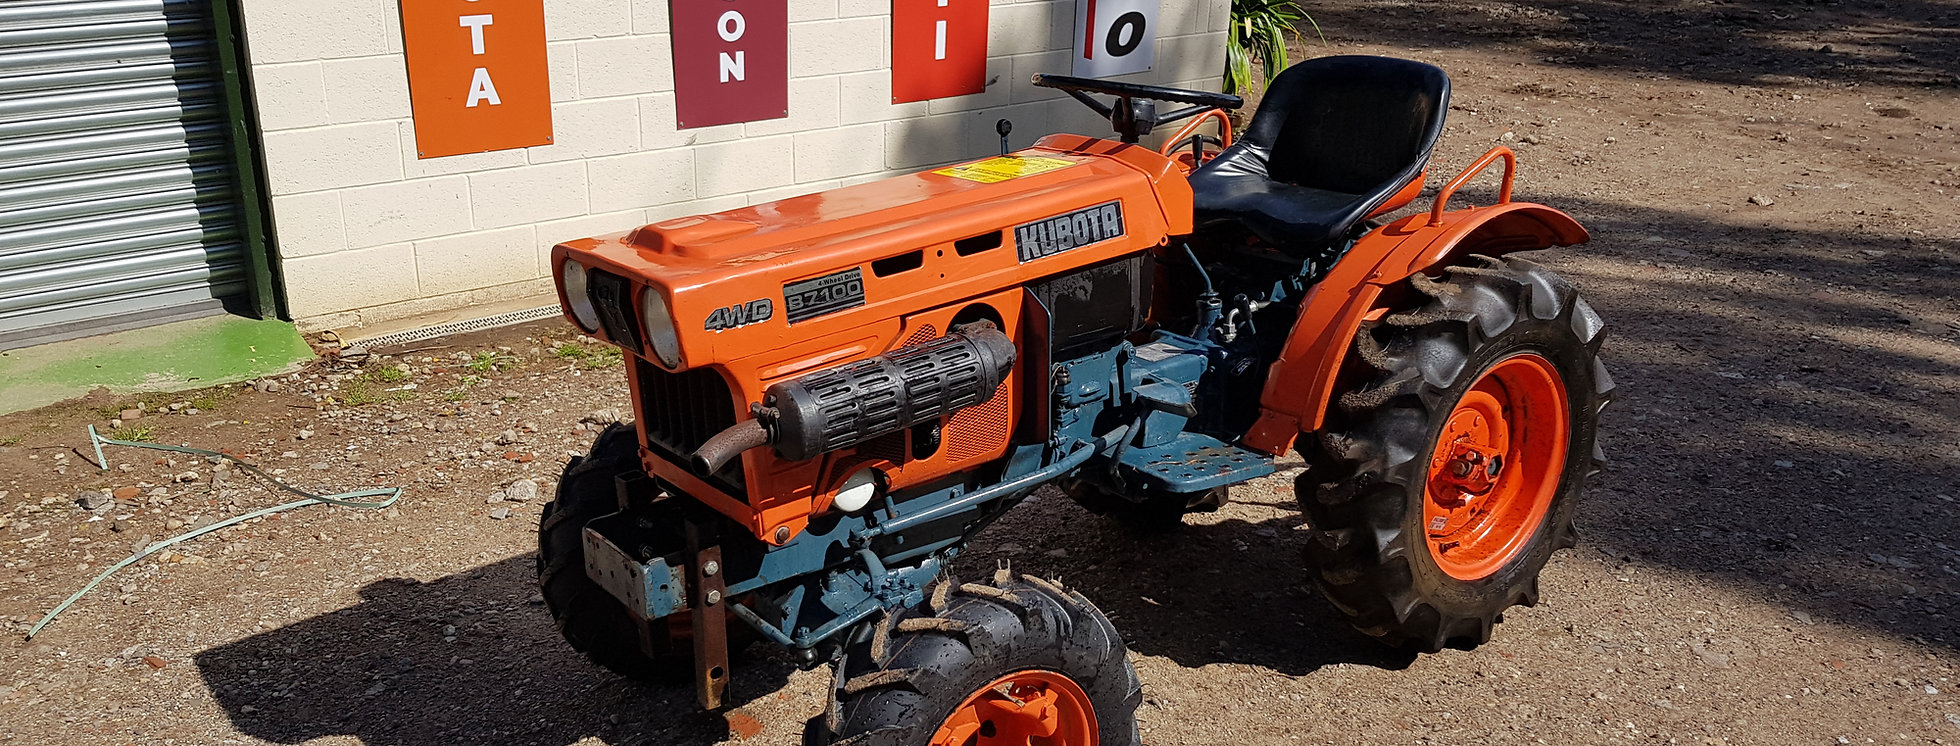 B7100D Kubota Compact Tractor   Compact Tractors For Sale UK